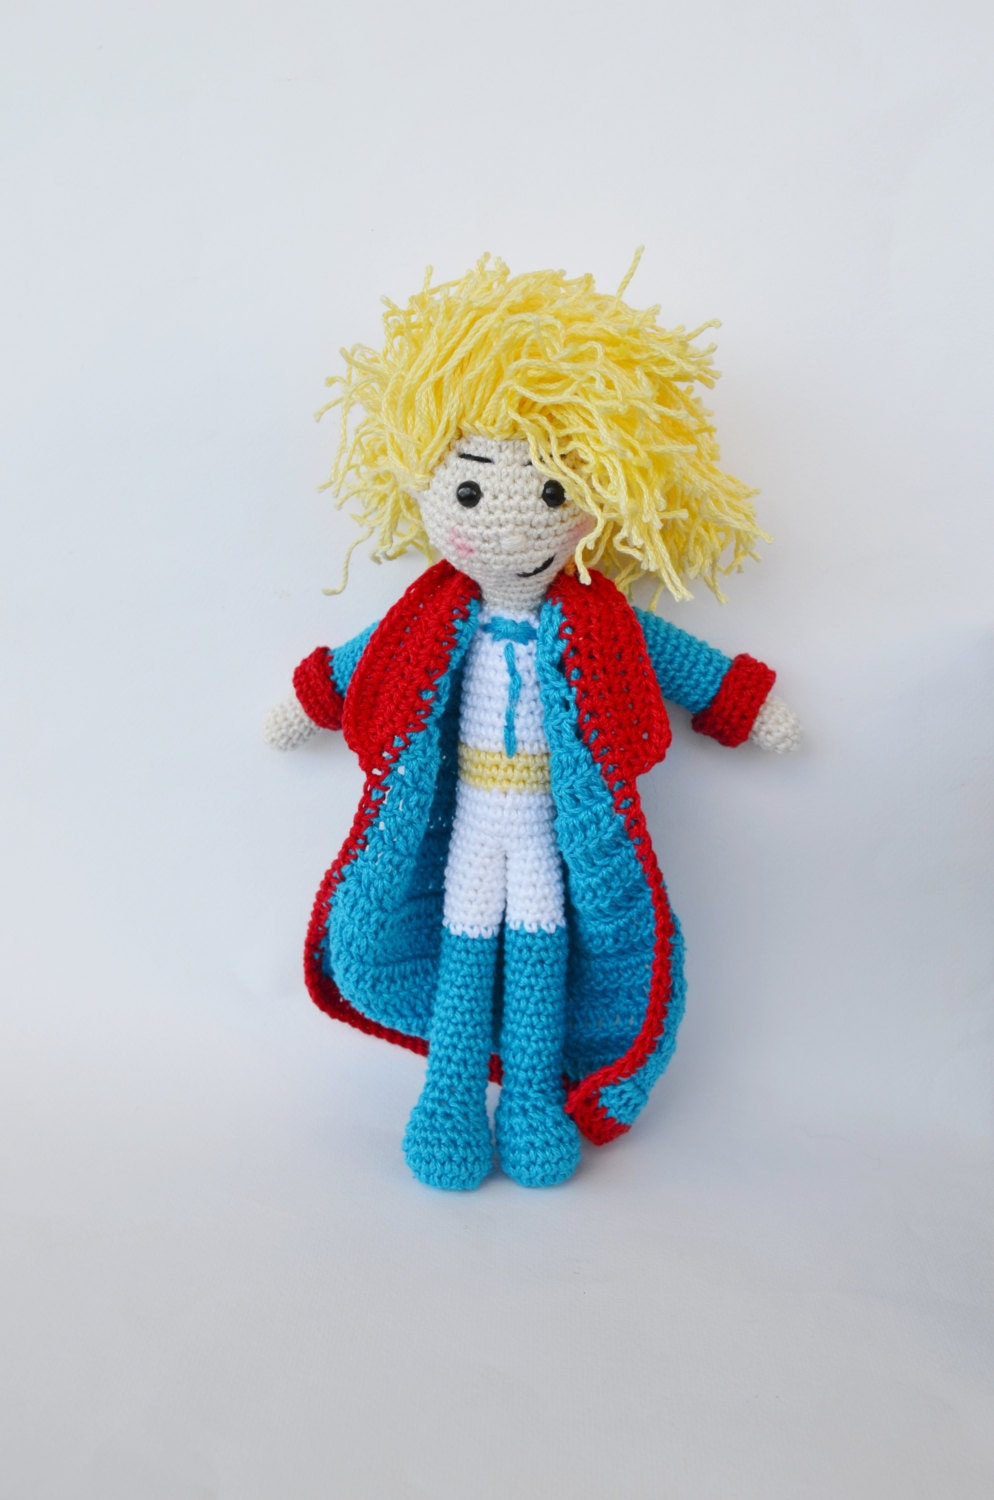 The Little Prince Amigurumi Handmade Crochet Doll by ...